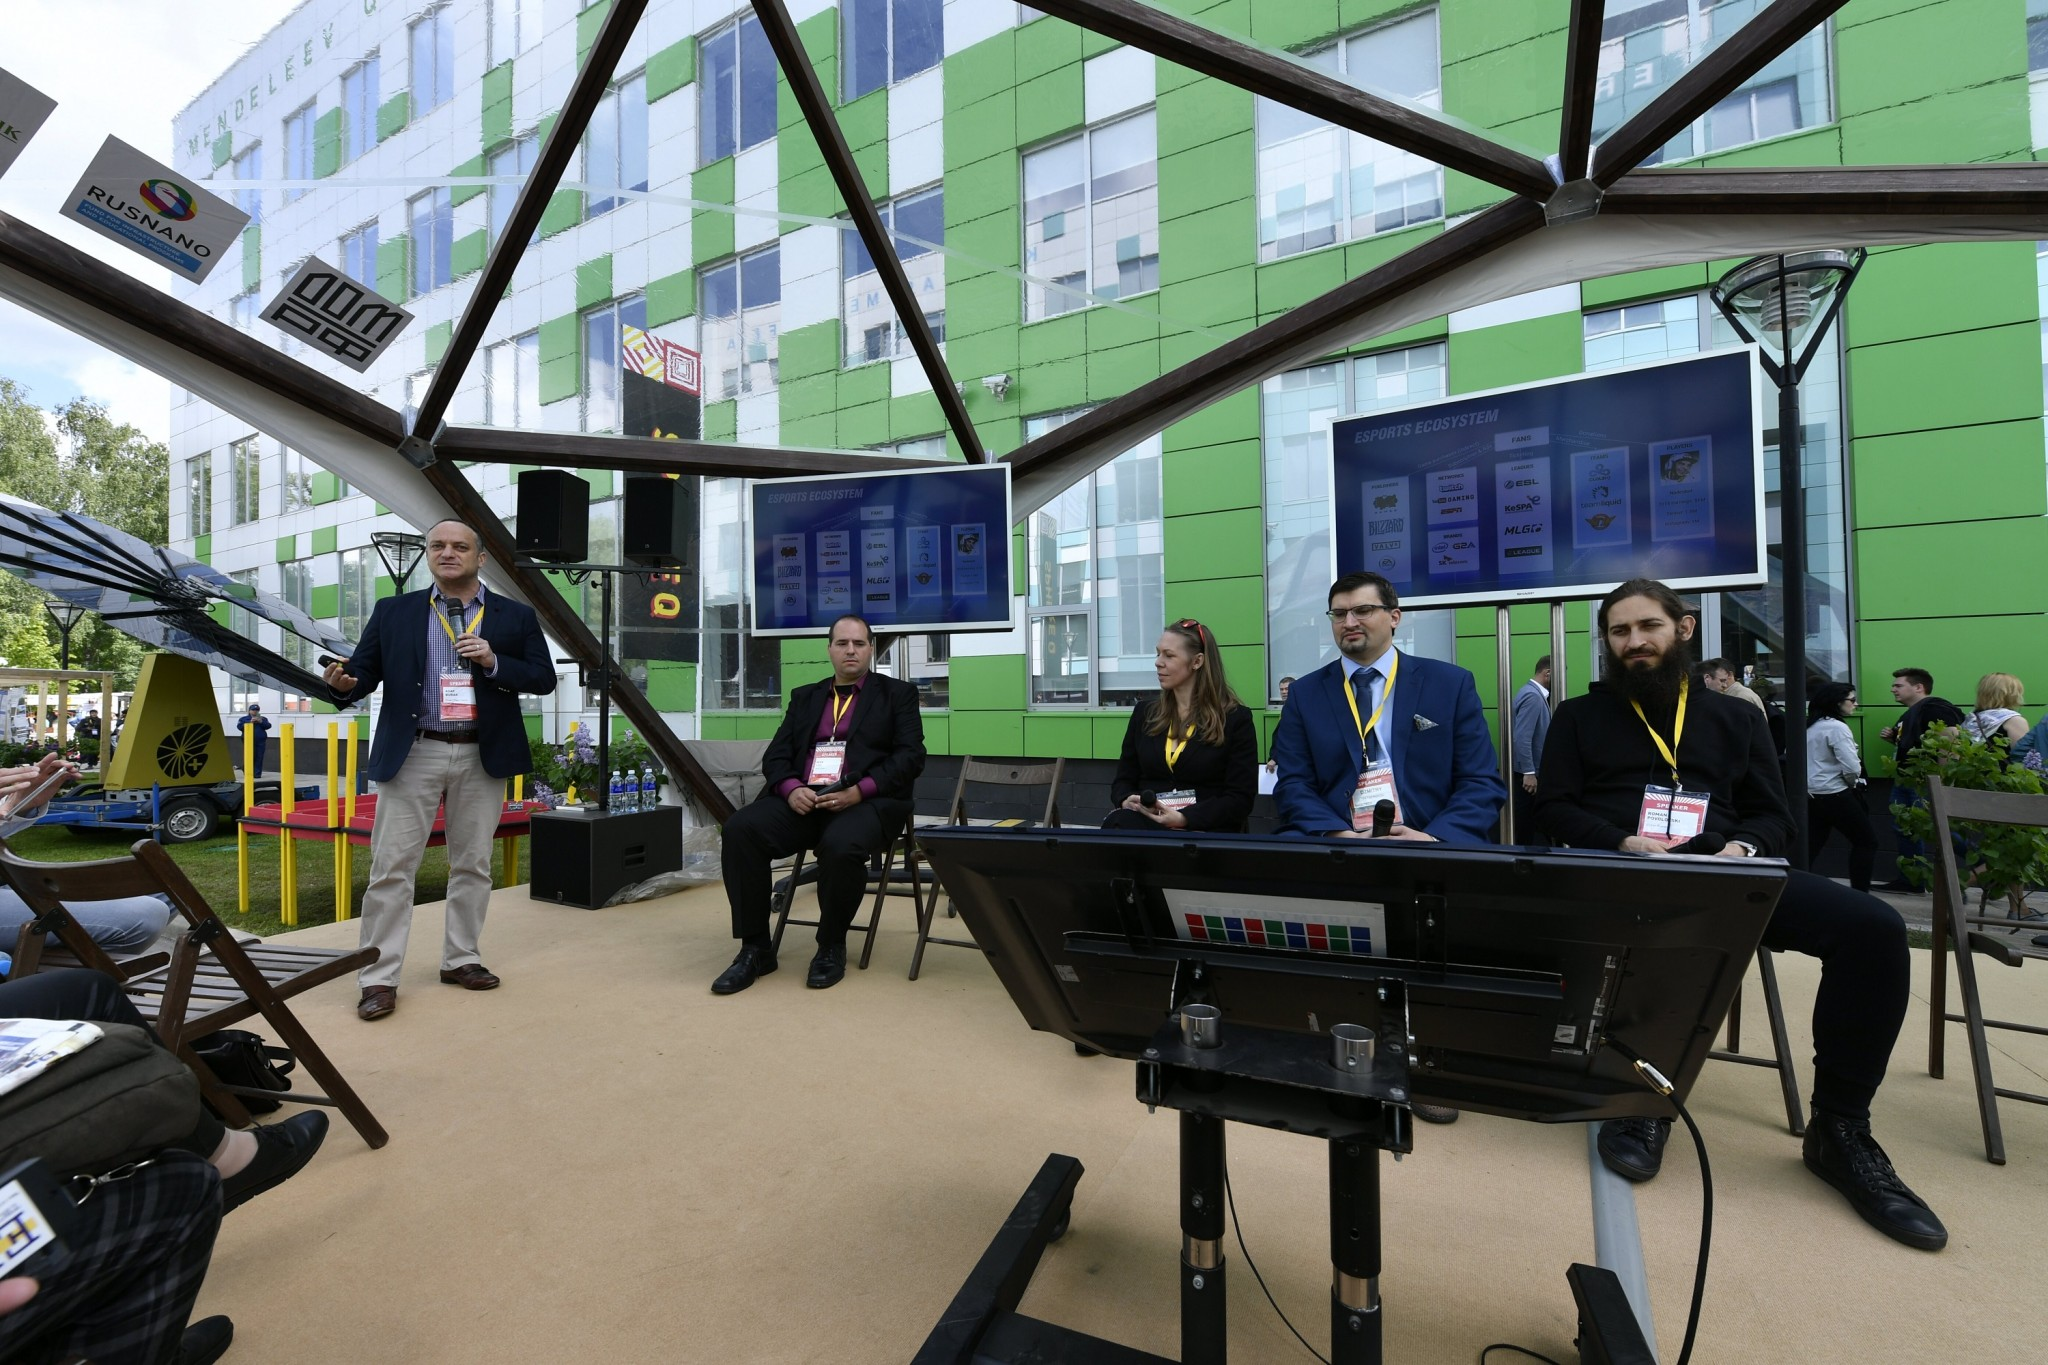 The movers and shakers behind the Skoltech Esports Academy speak before a rapt audience during the Startup Village.